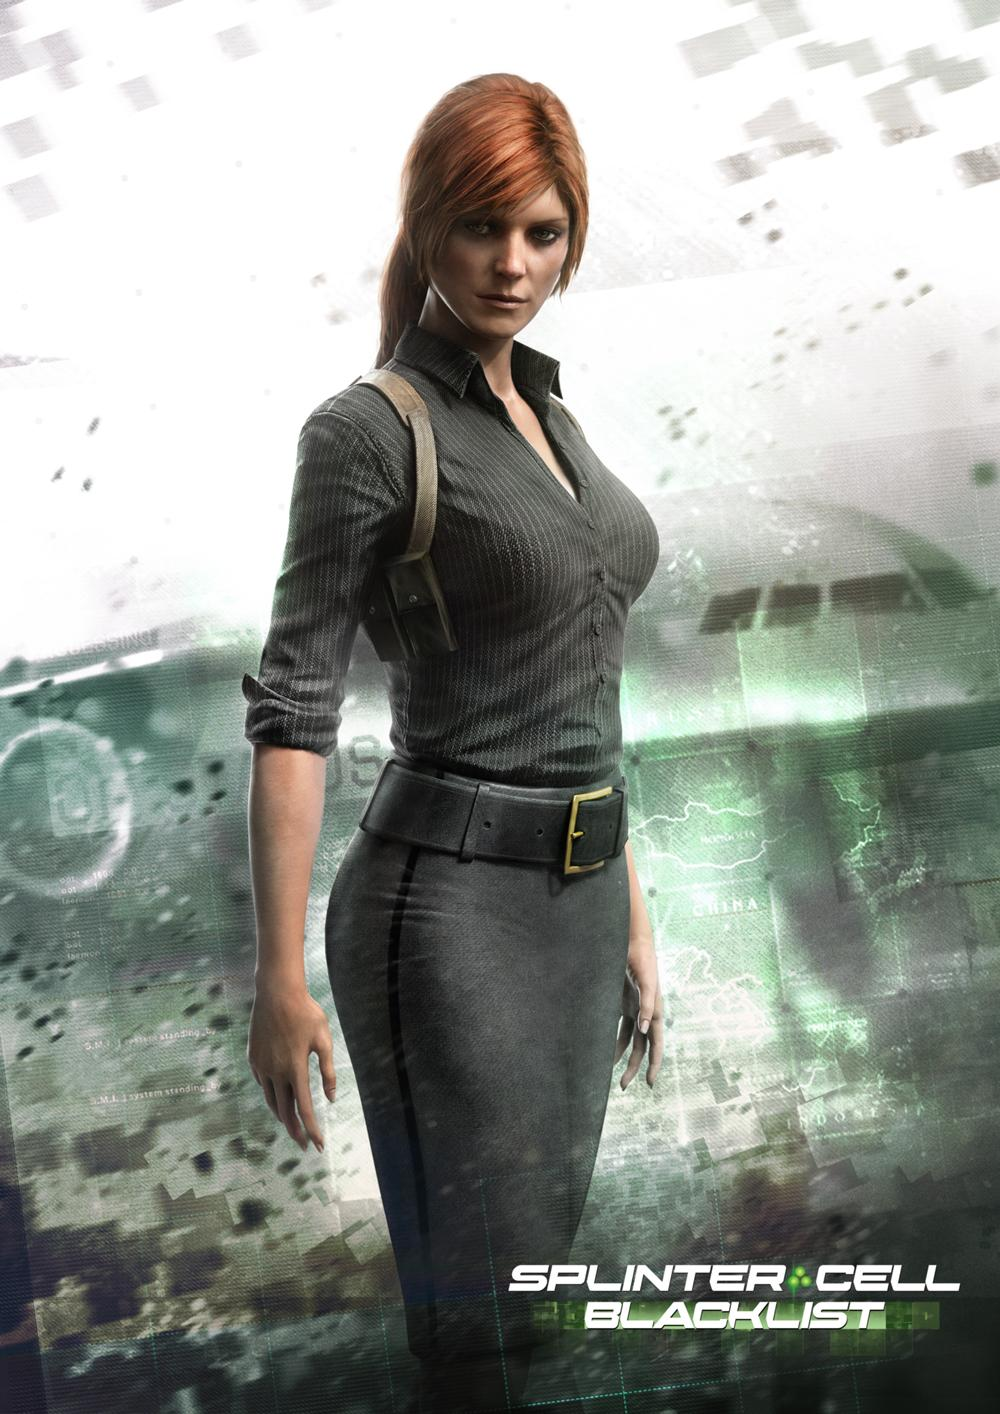 Exclusive interview kate drummond discusses splinter cell blacklist her character anna - Splinter cell grim ...